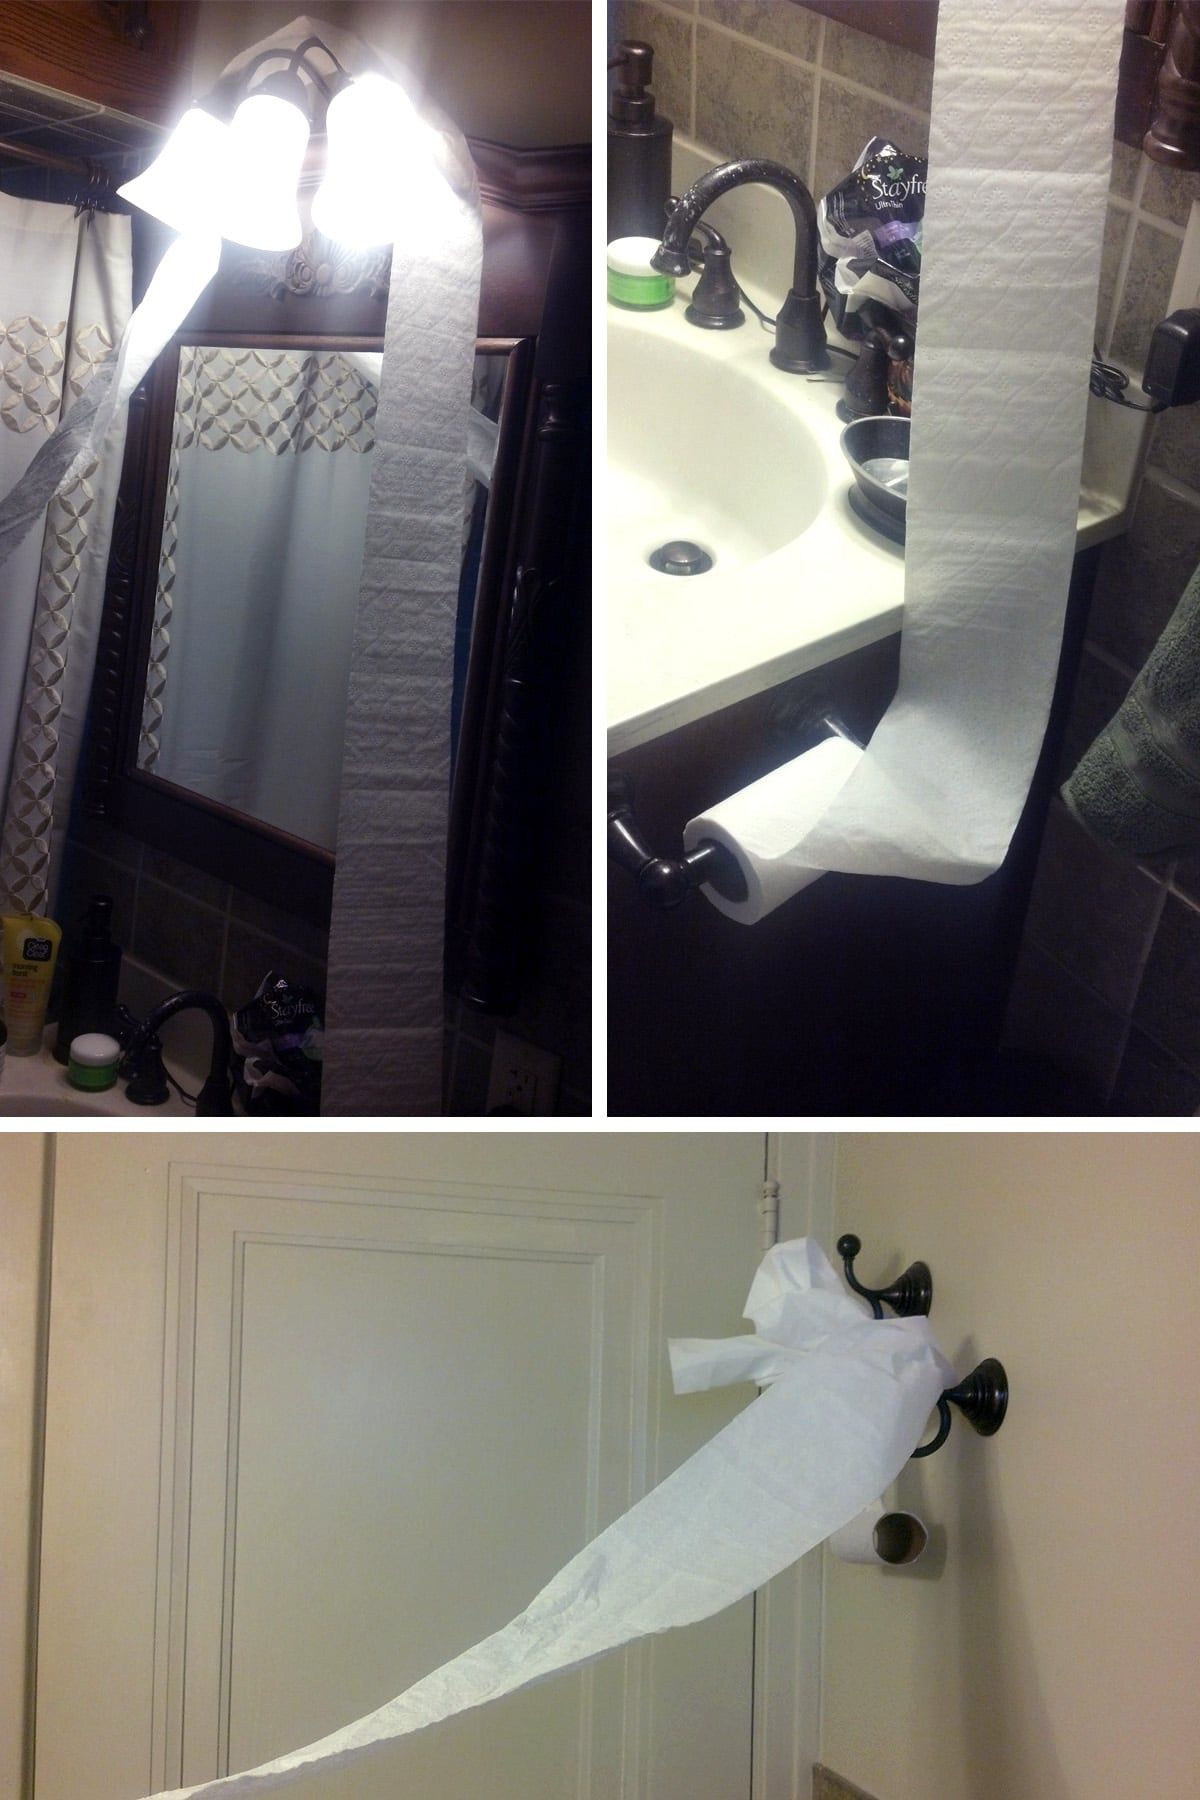 A compilarion image of 3 shots of toilet paper draped around the washroom.